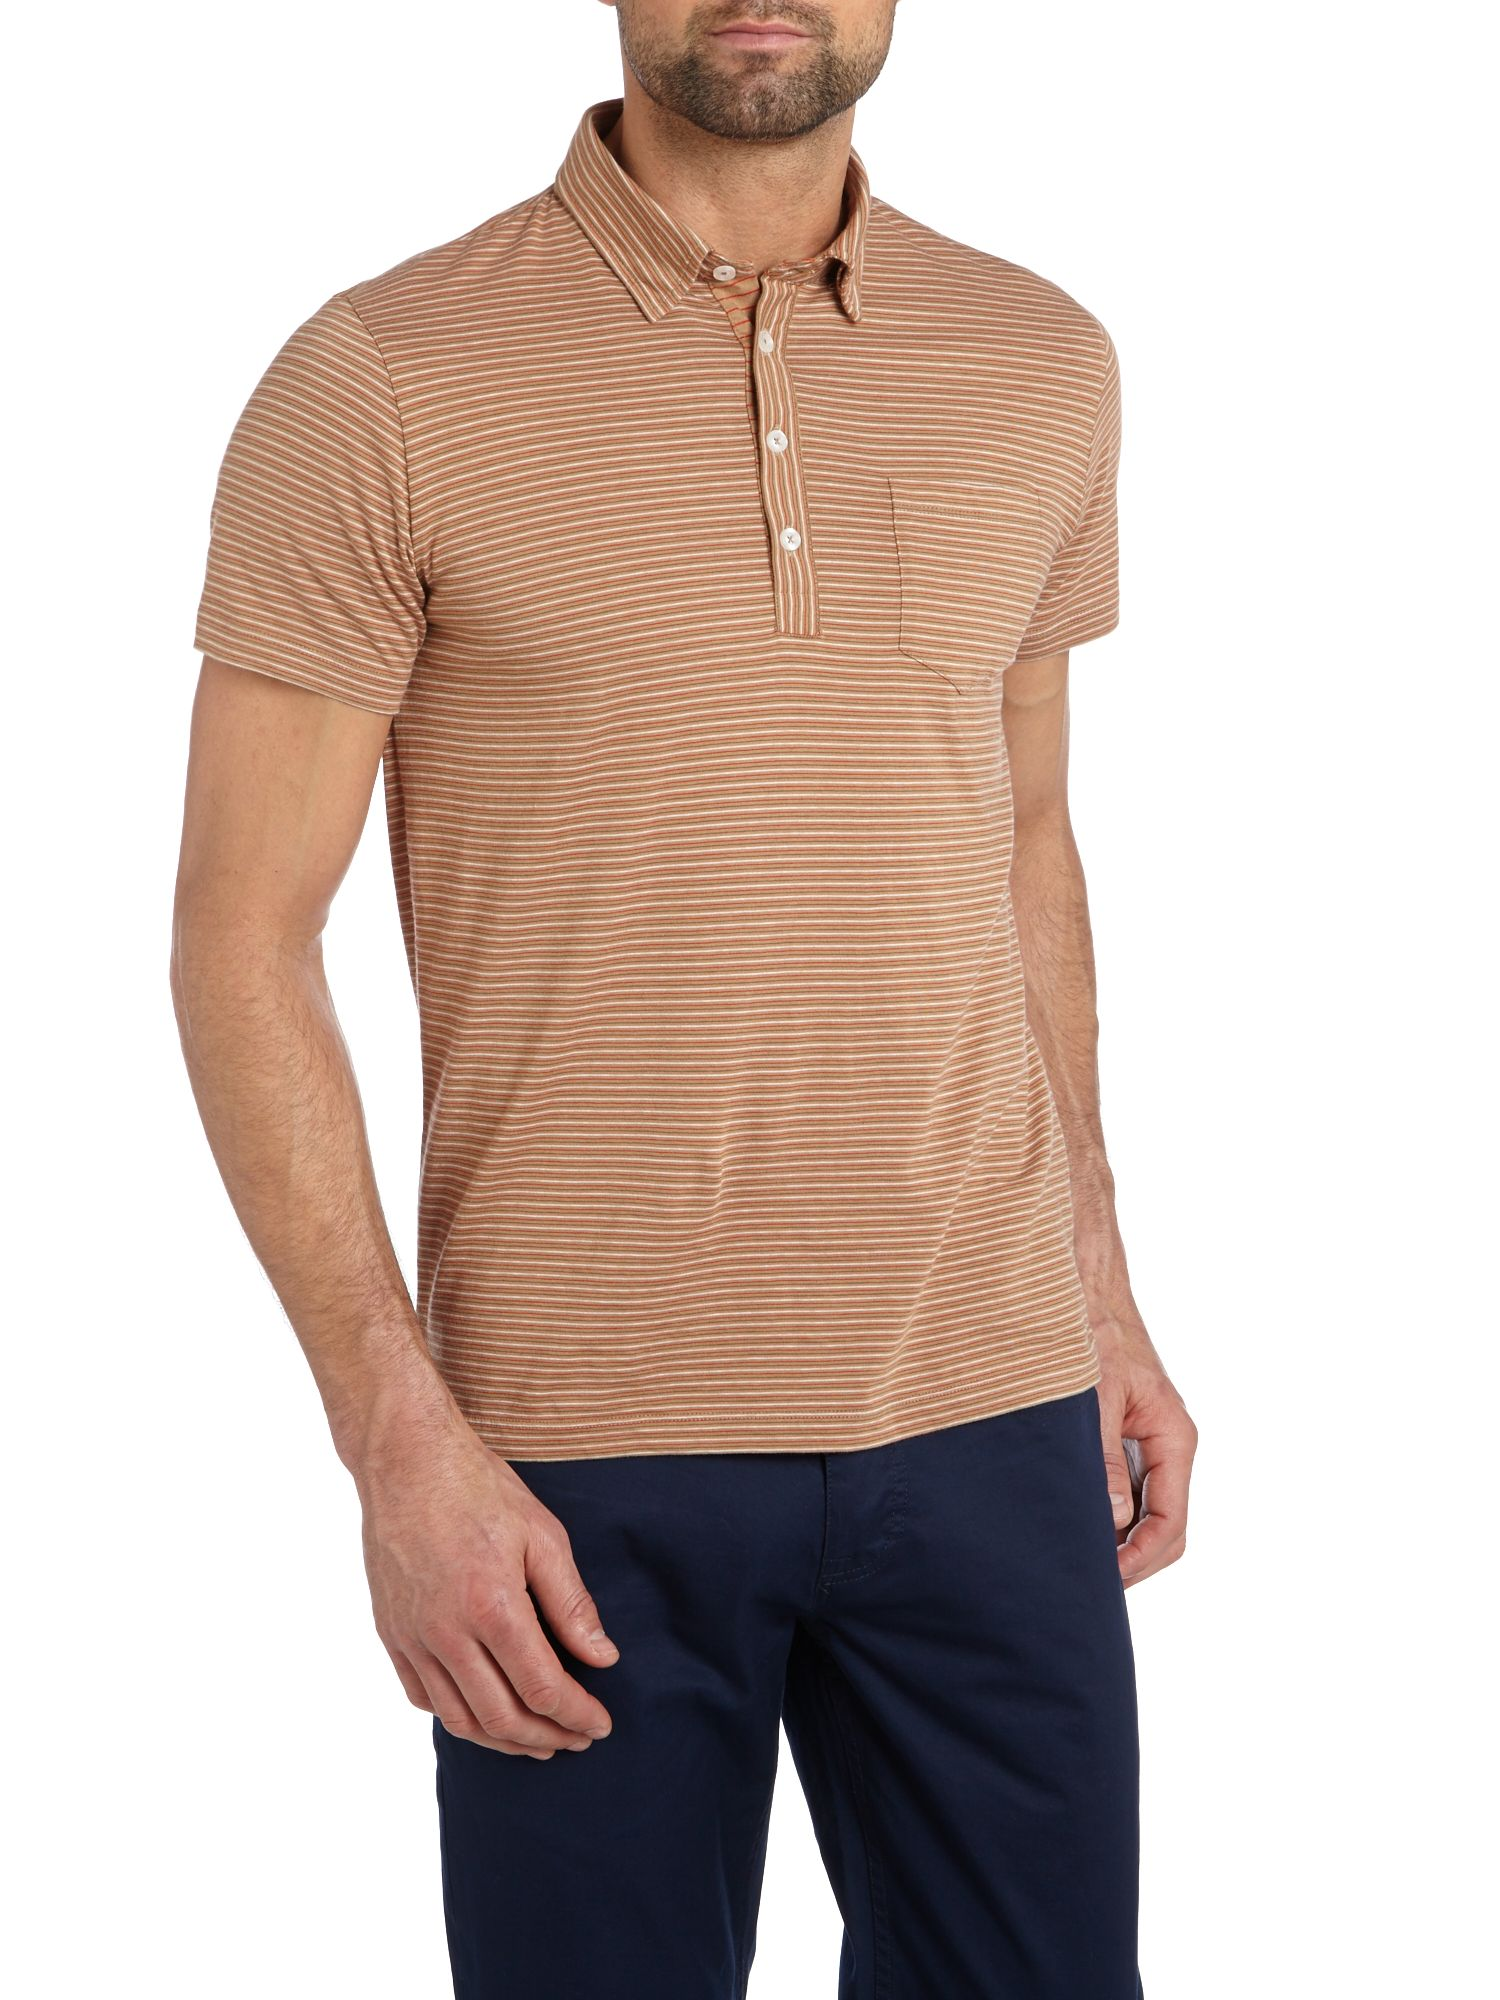 Sunrise polo shirt